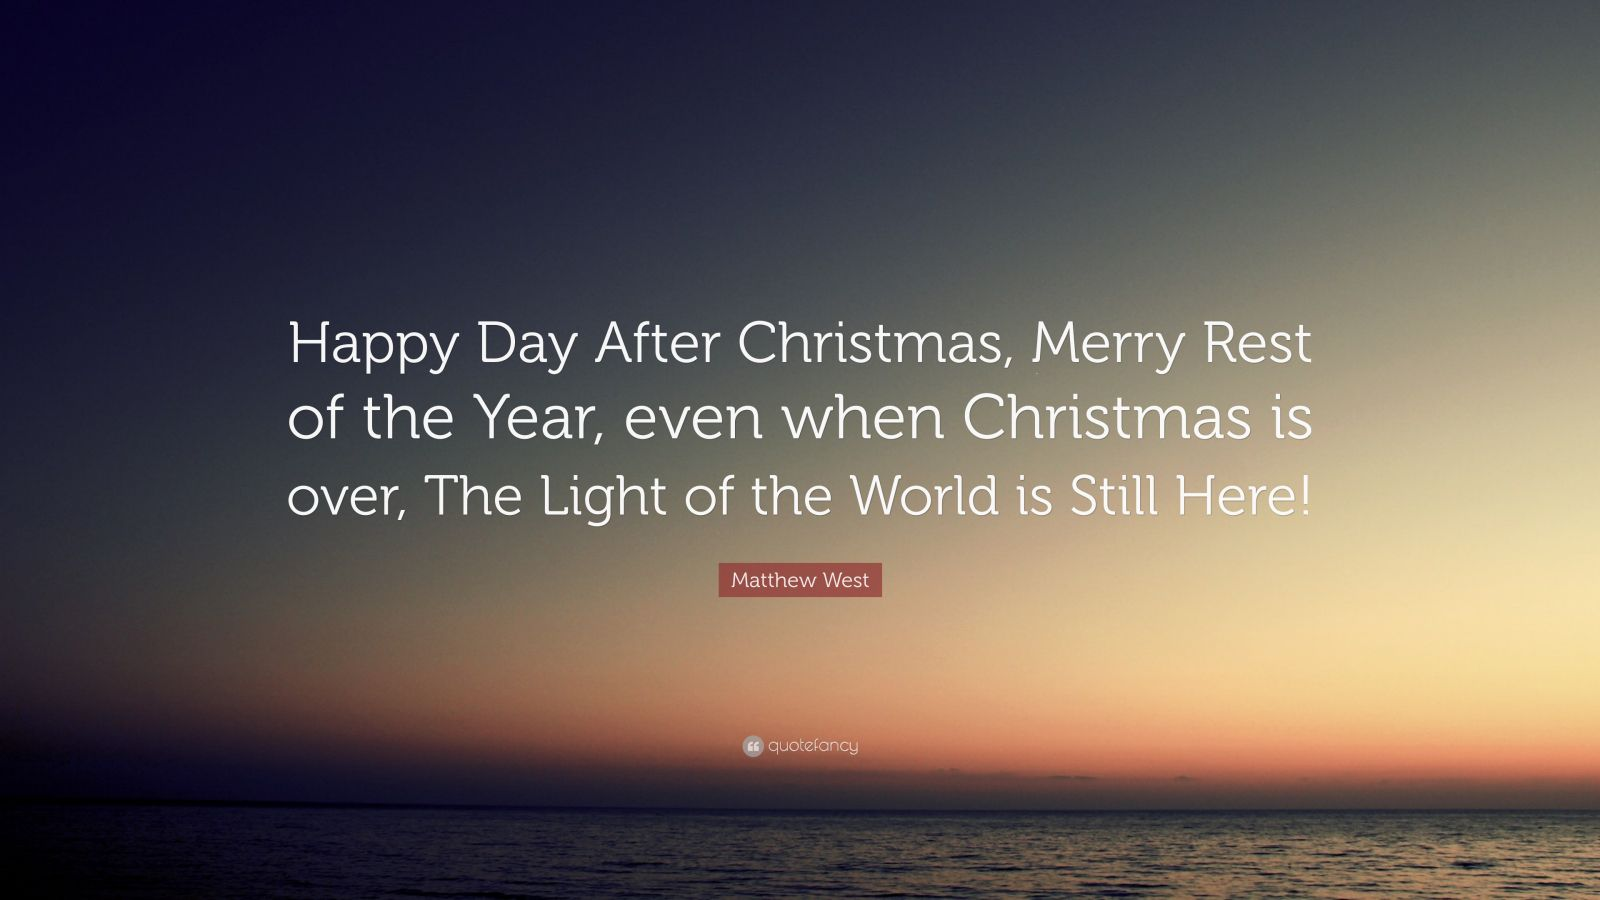 Happy Life Wallpapers With Quotes Matthew West Quote Happy Day After Christmas Merry Rest